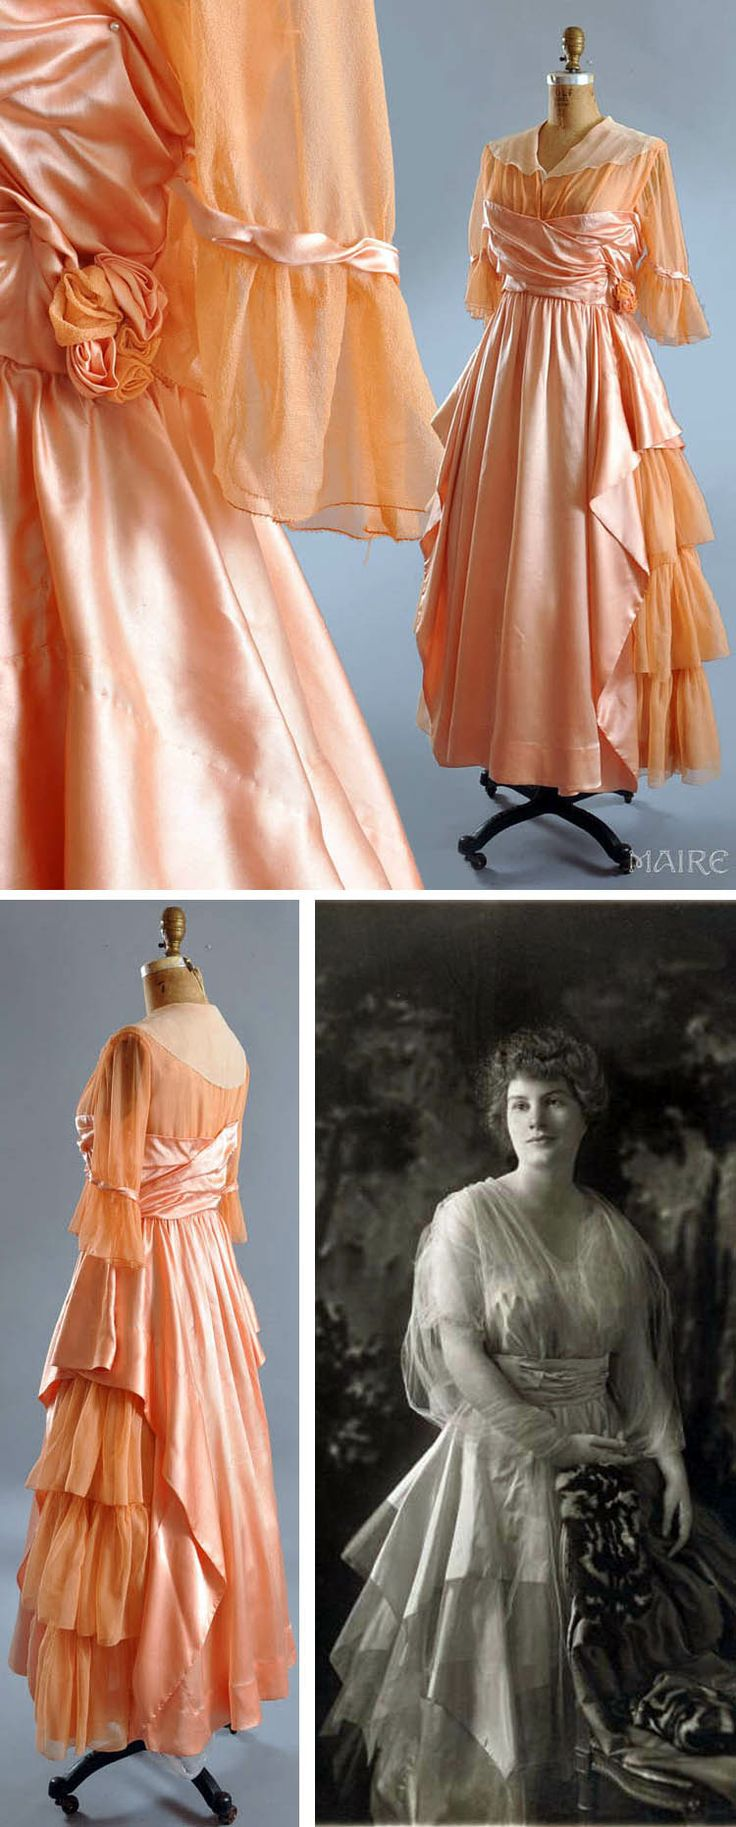 Fabulous. Tea gown, 1910. Apricot silk charmeuse & apricot silk chiffon. Collar is white silk chiffon. Lined in apricot batiste or lawn. Crossover front bodice that snaps in layers underneath. Unstructured (no boning). Charmeuse & chiffon rose on side. Chiffon sleeves with chiffon ruffles & charmeuse banding. Skirt is tiered ruffled chiffon on sides with silk charmeuse front & back. Photo is of Isabel Warren wearing a similar dress in 1915. Maire McLeod/Ruby Lane Vintage